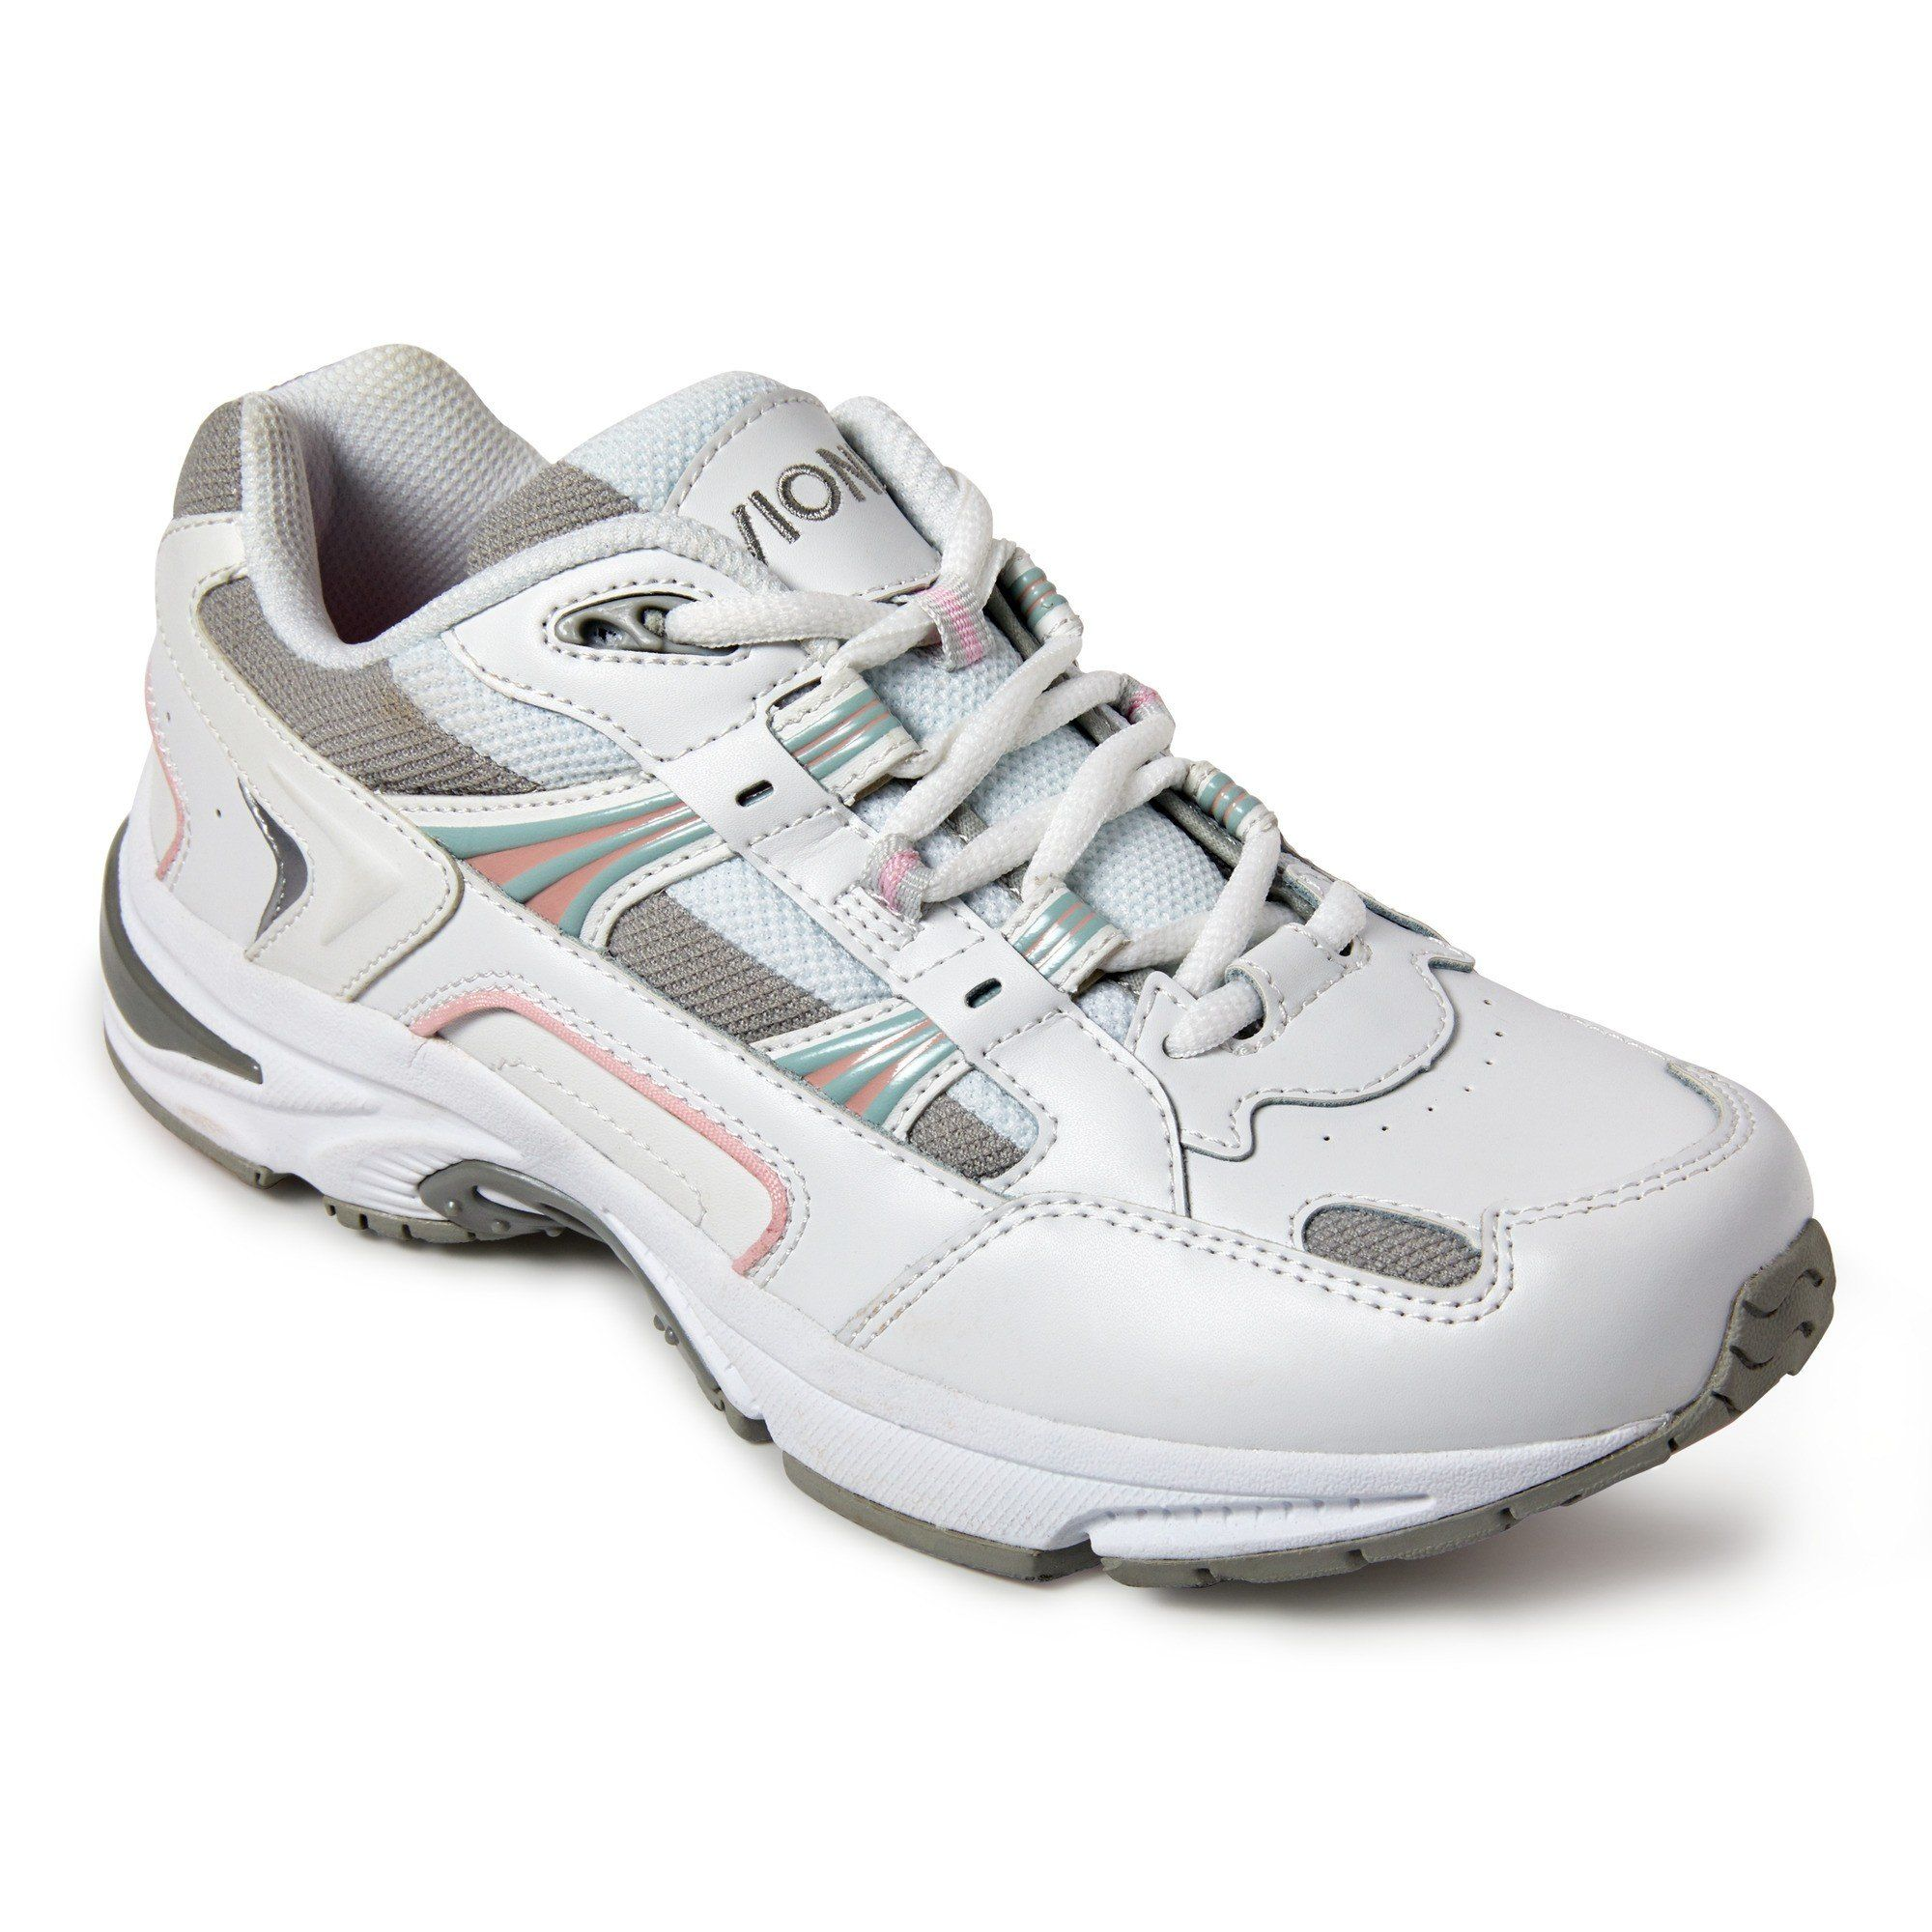 best women's walking and running shoes